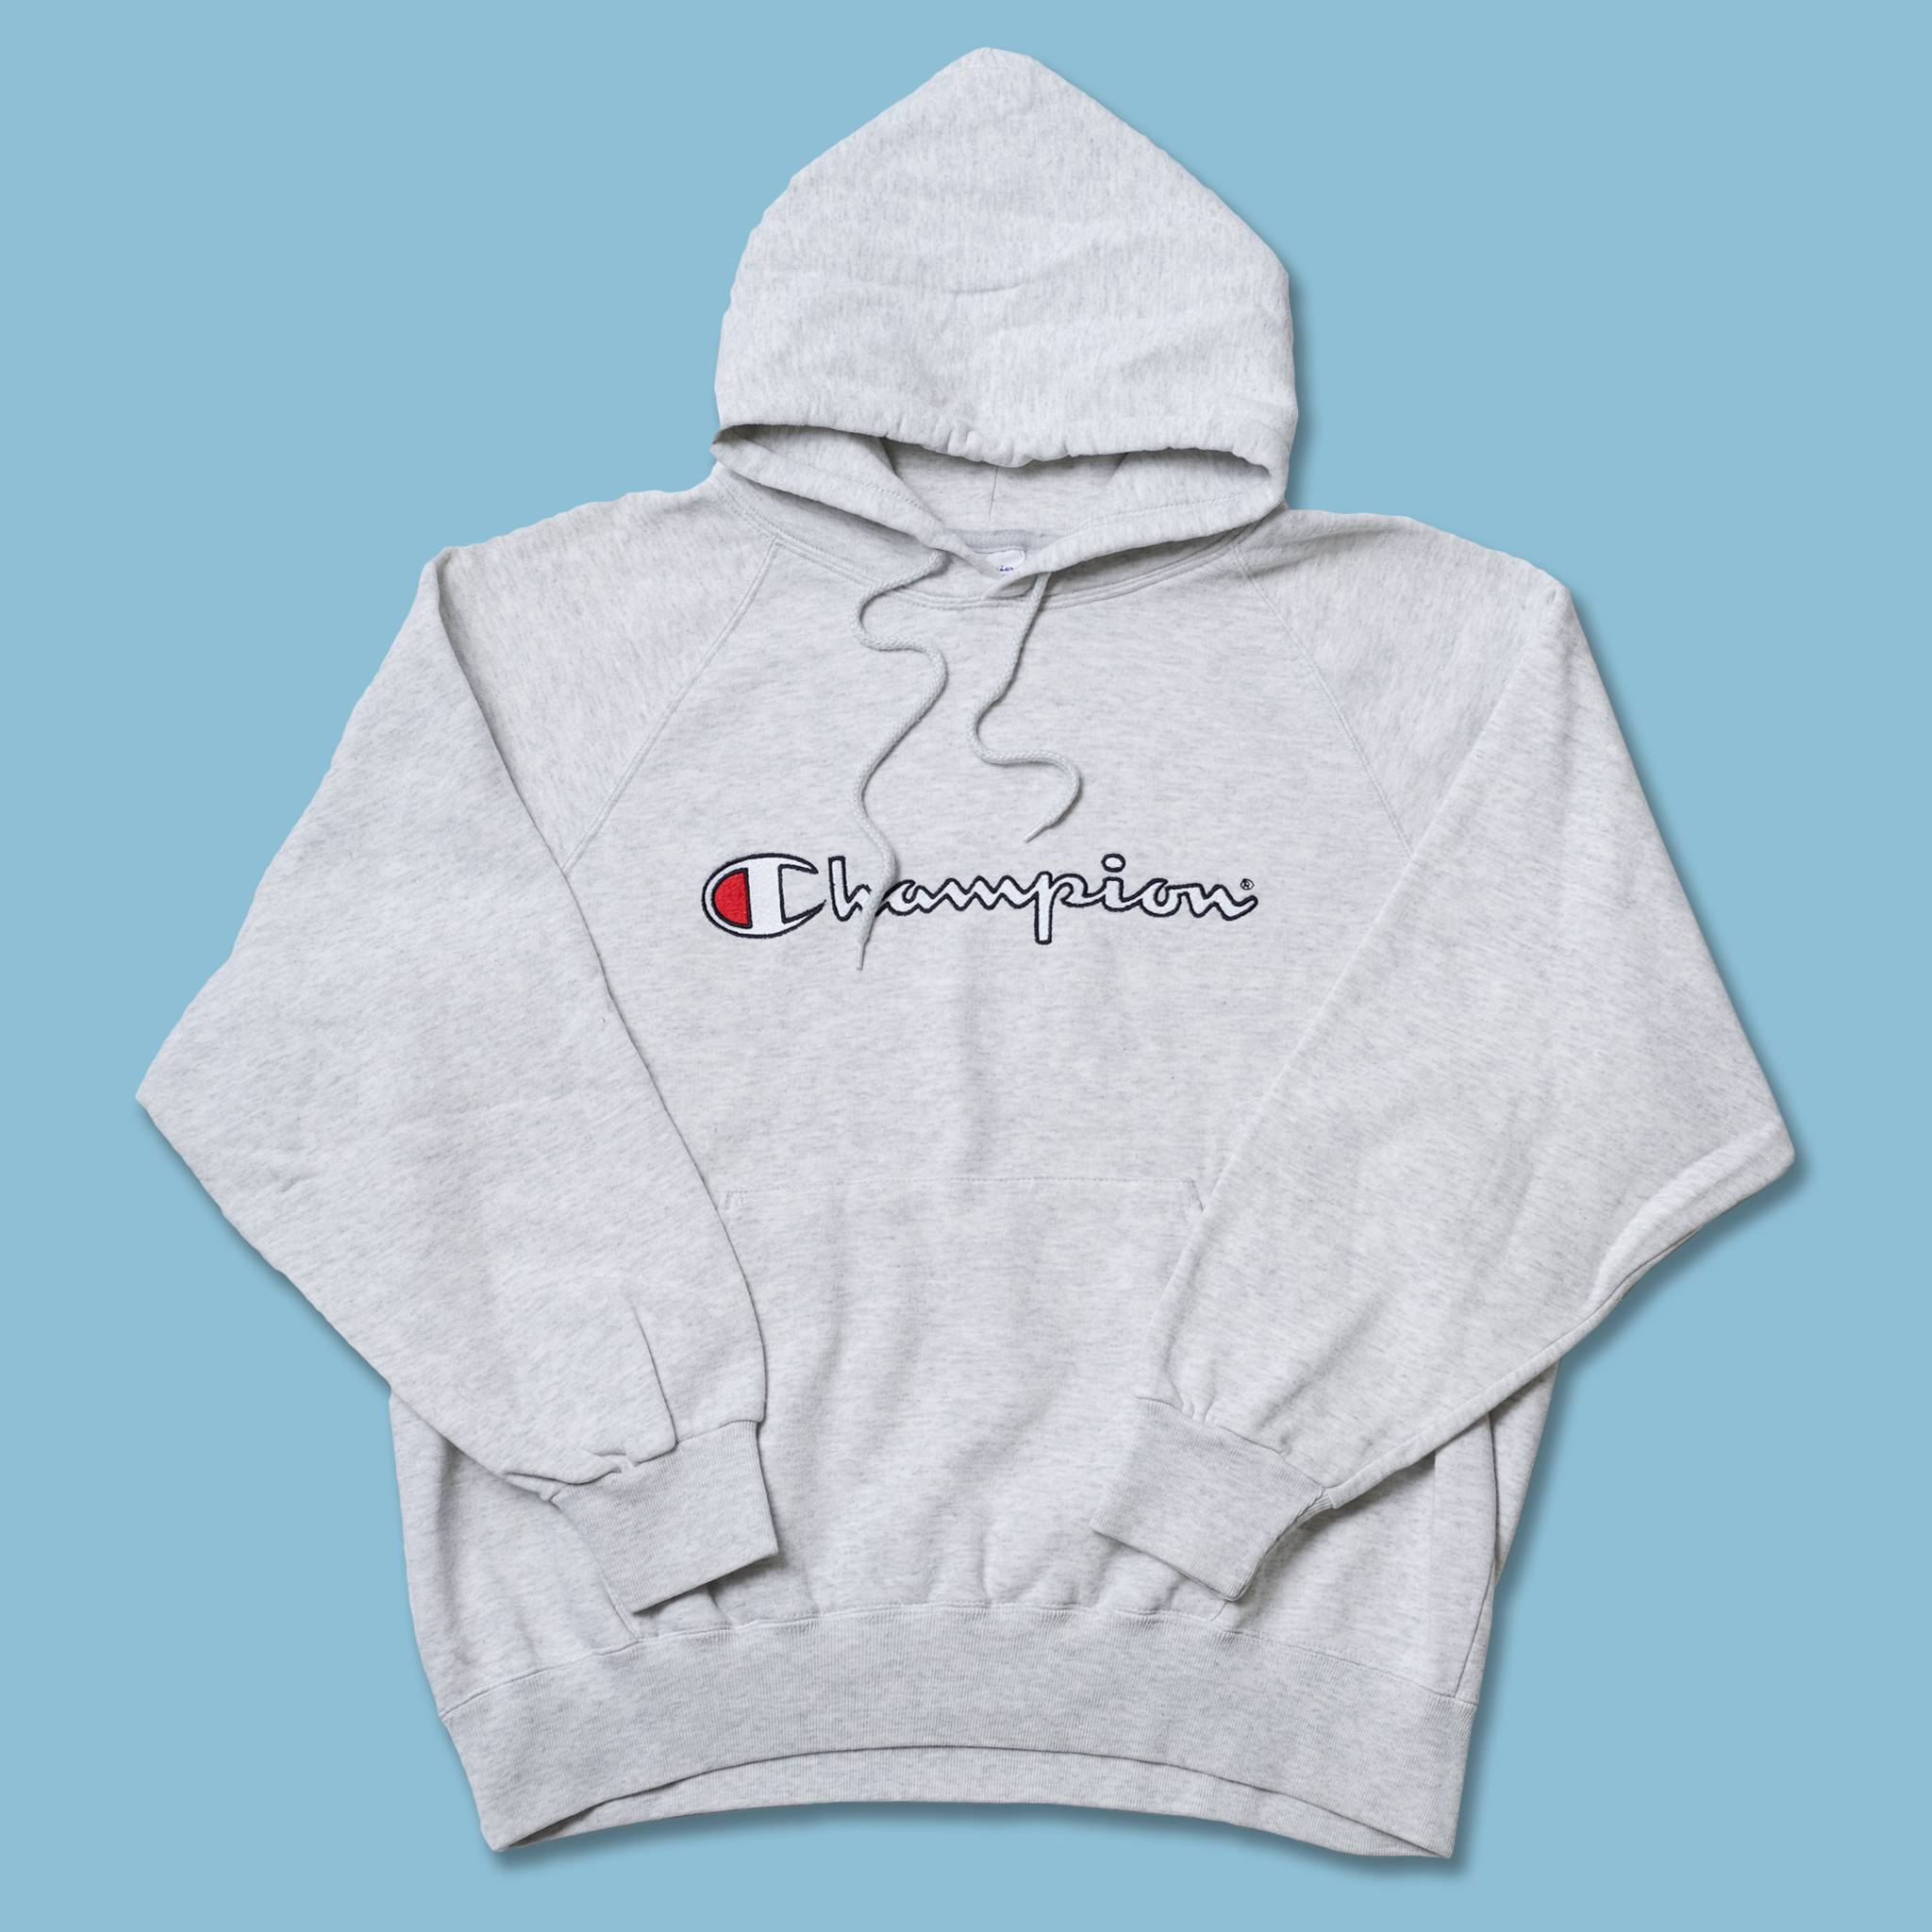 Vintage Champion Hoody Medium / Large